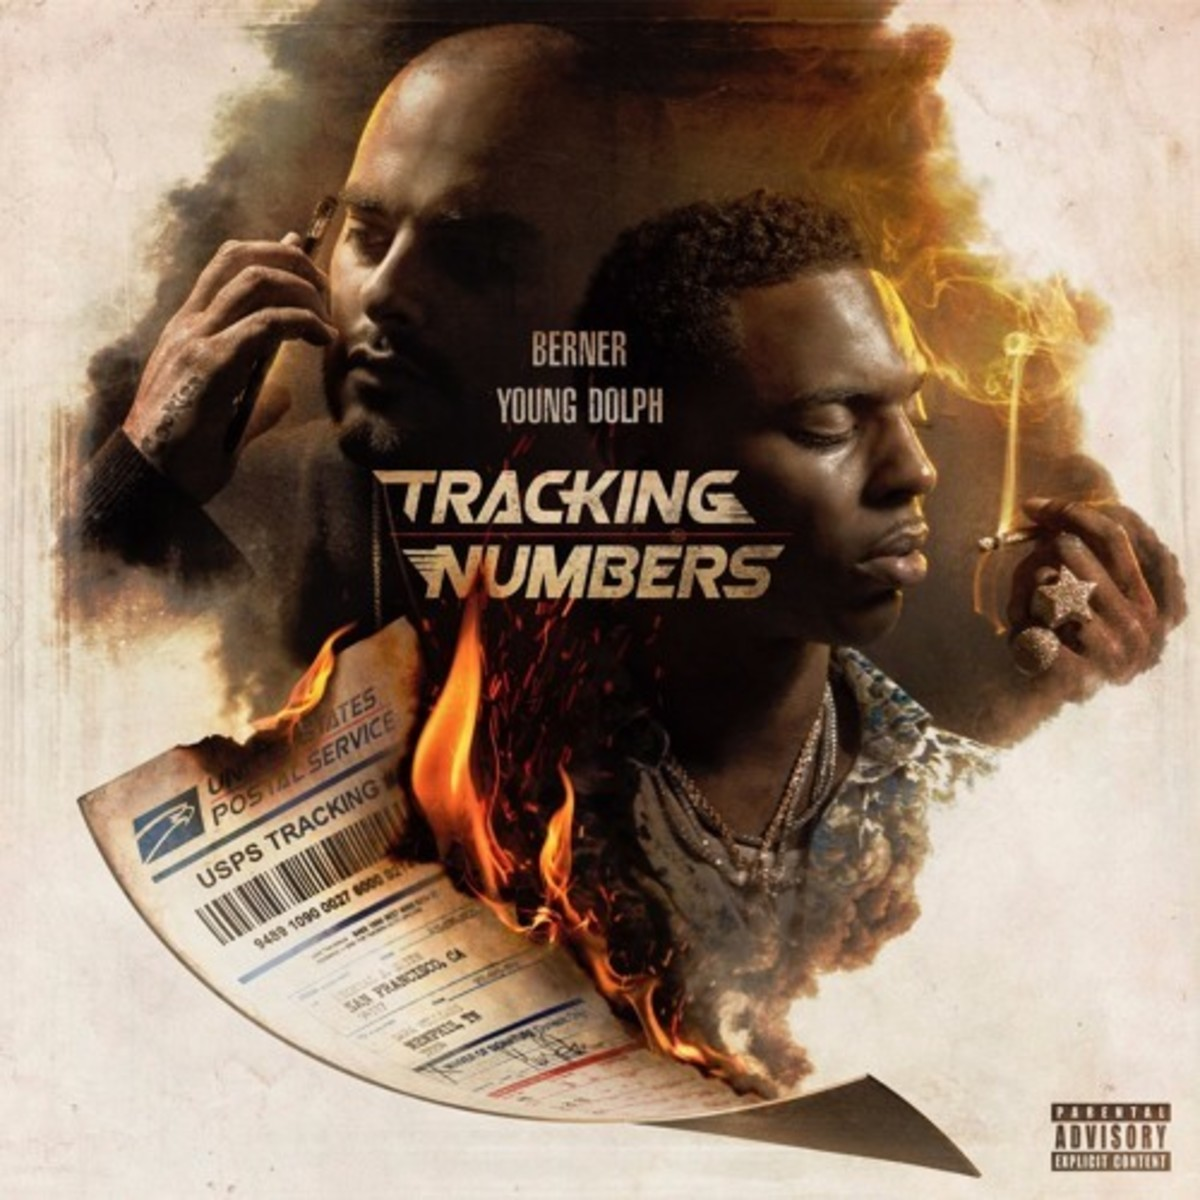 berner-young-dolph-tracking-numbers.jpg